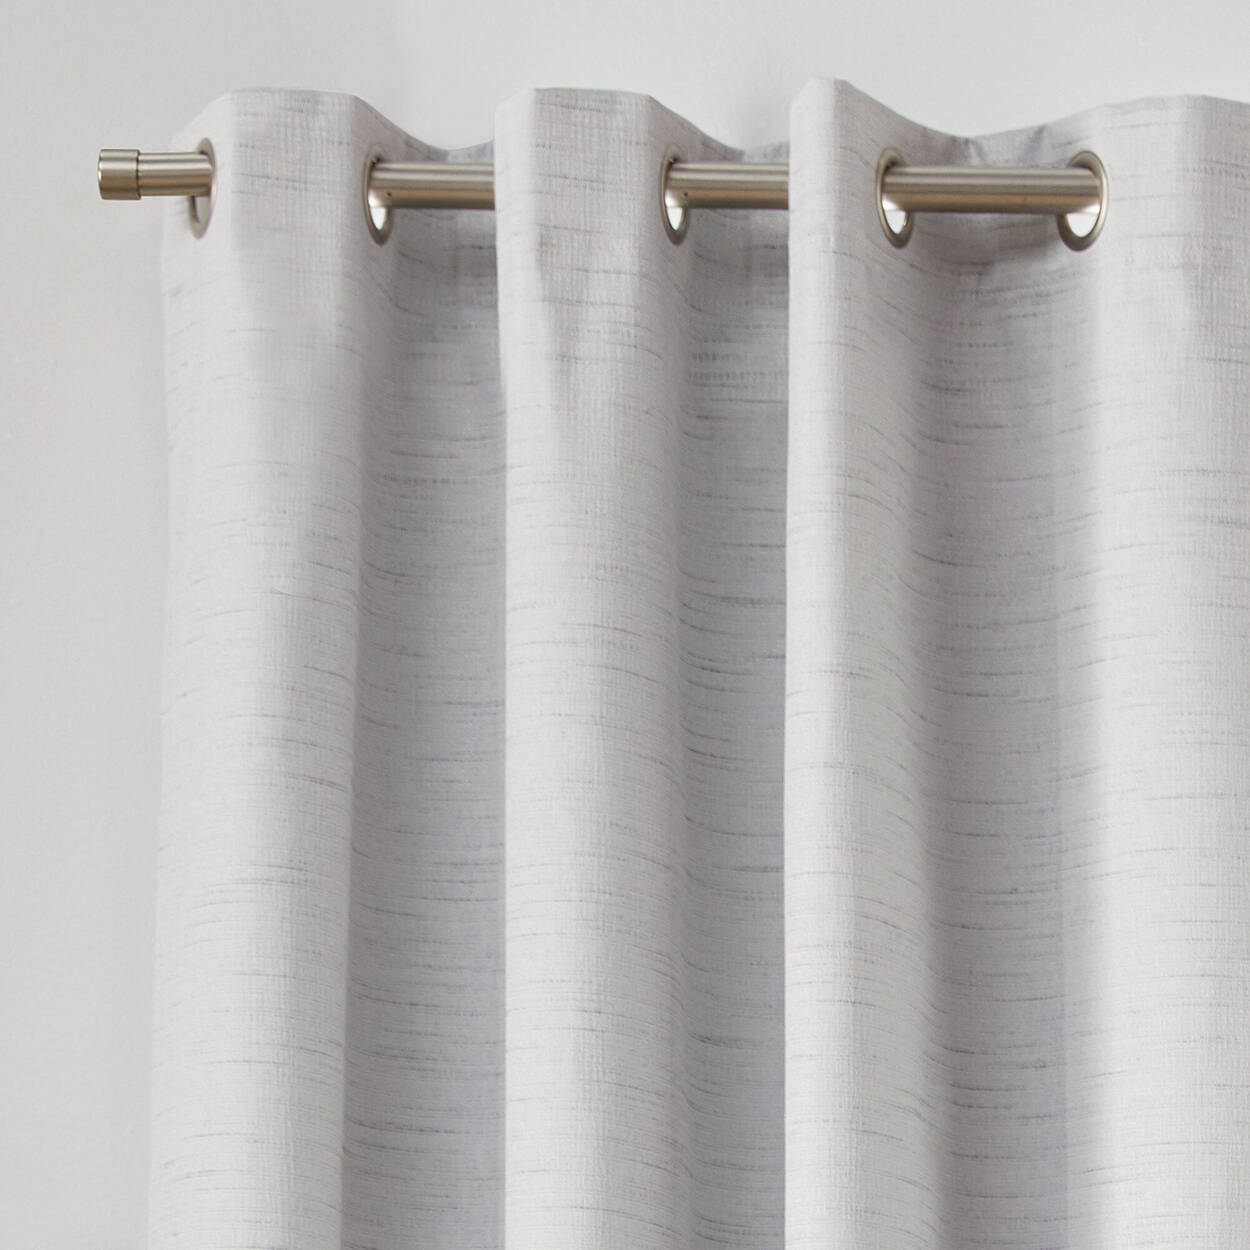 Dayton Blackout Curtain